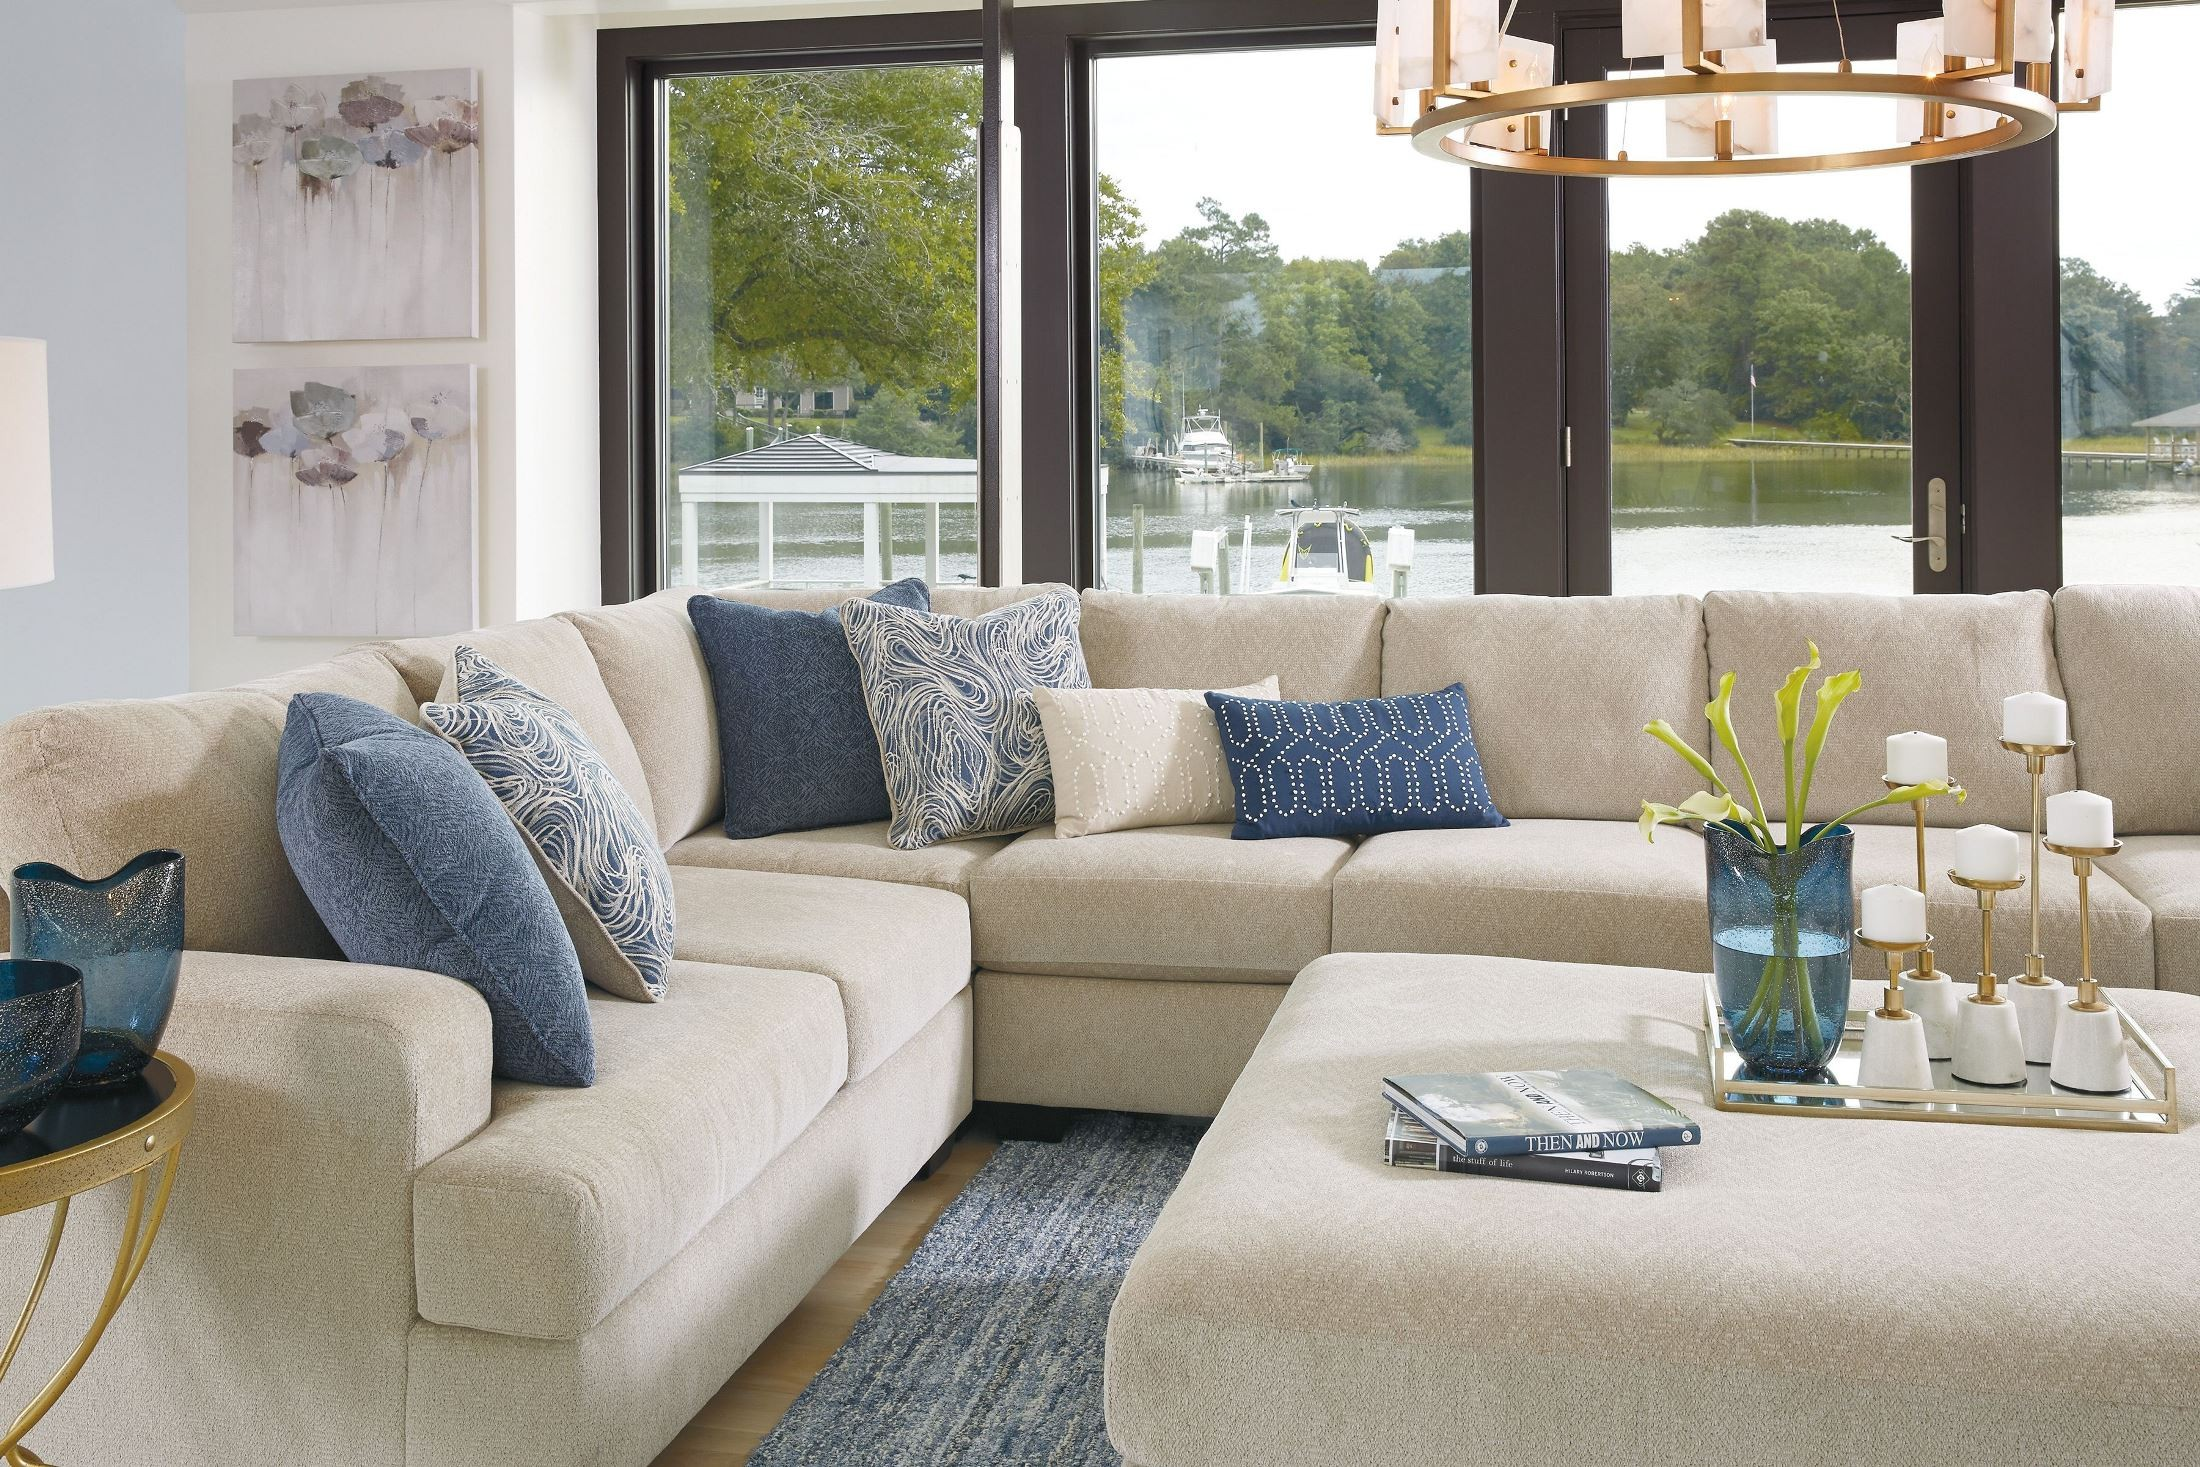 Enola Sepia Oversized Accent Ottoman From Ashley Coleman Furniture